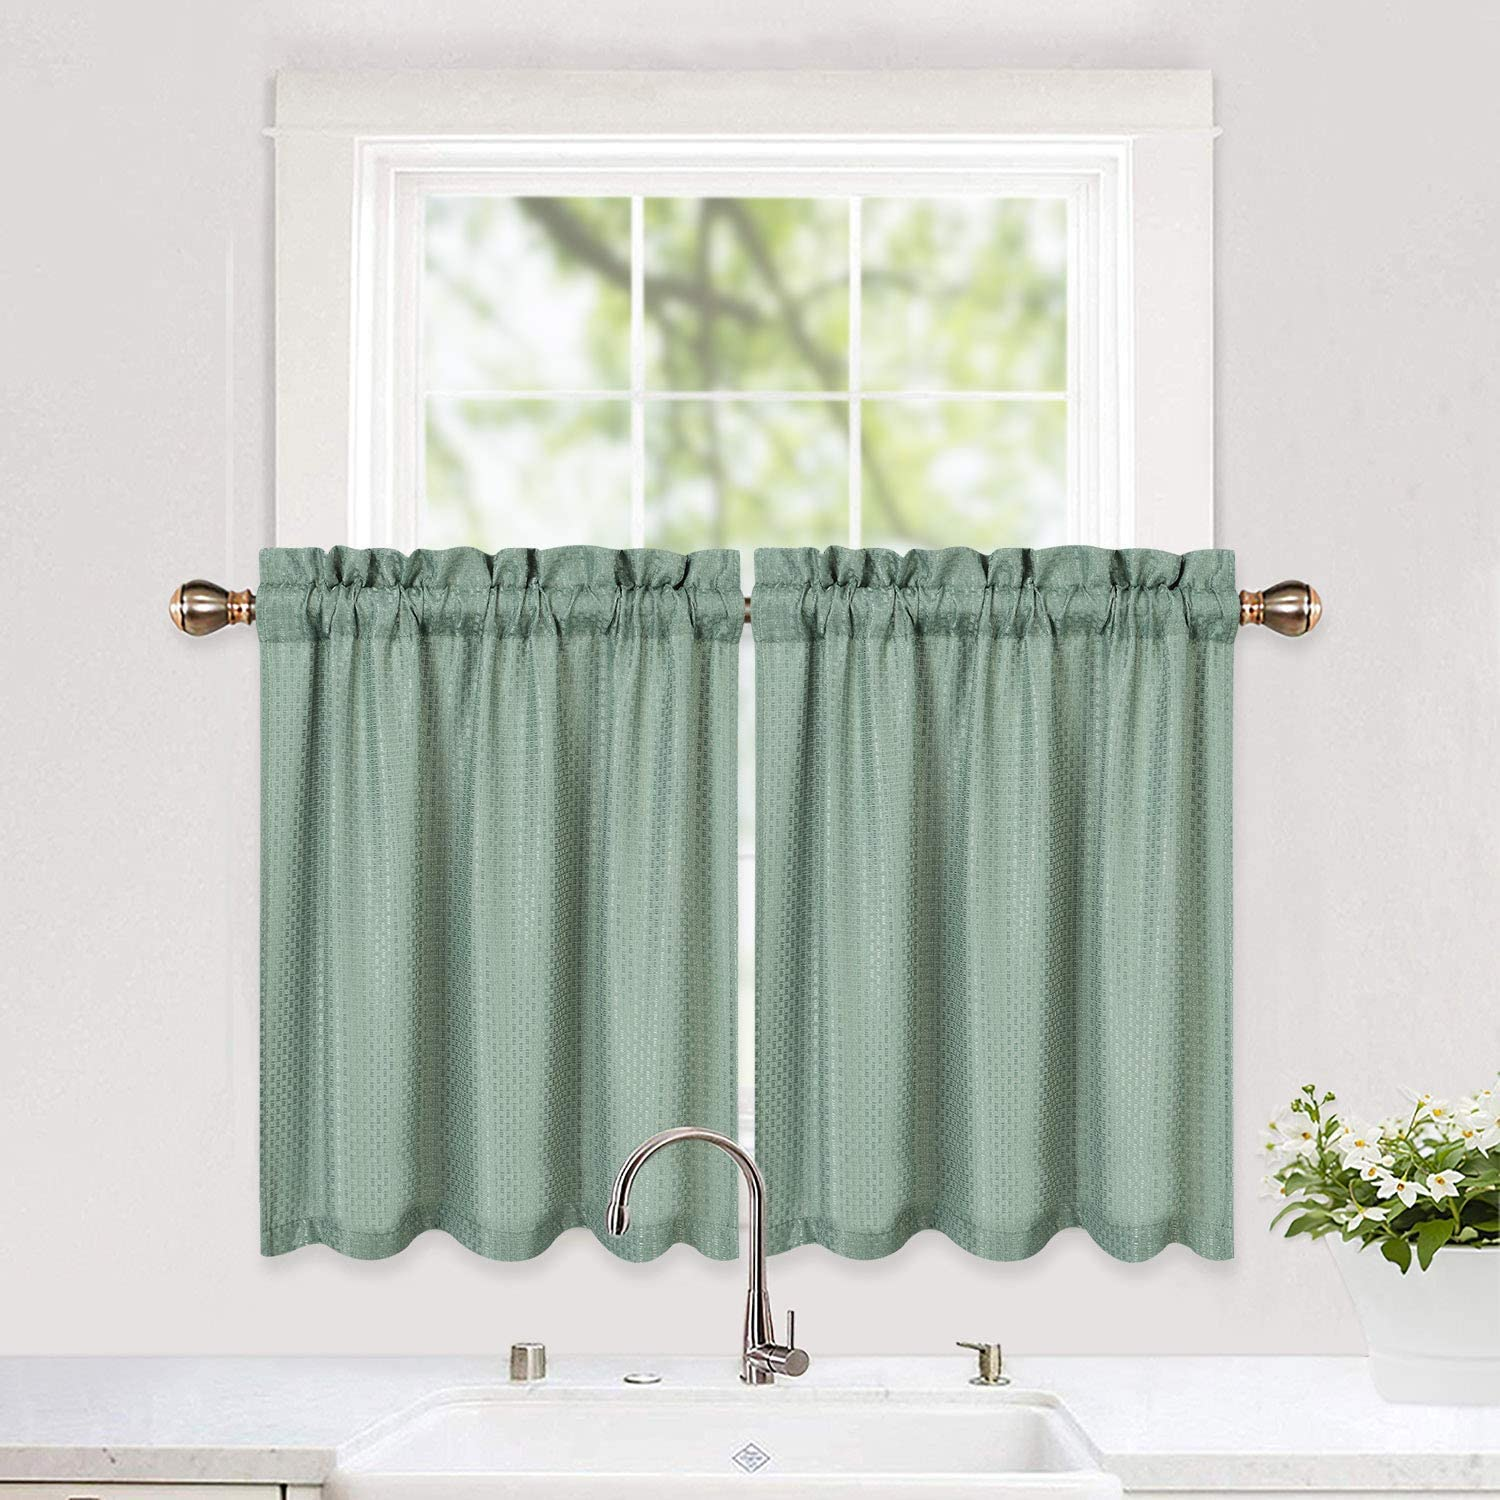 Lintimes Waterproof Kitchen Curtains Waffle Weave Textured Tier Curtains Short Curtains Half Window Treatment Curtains For Kitchen Bathroom Living Room 30 30 Sage Set Of 2 Amazon Co Uk Kitchen Home